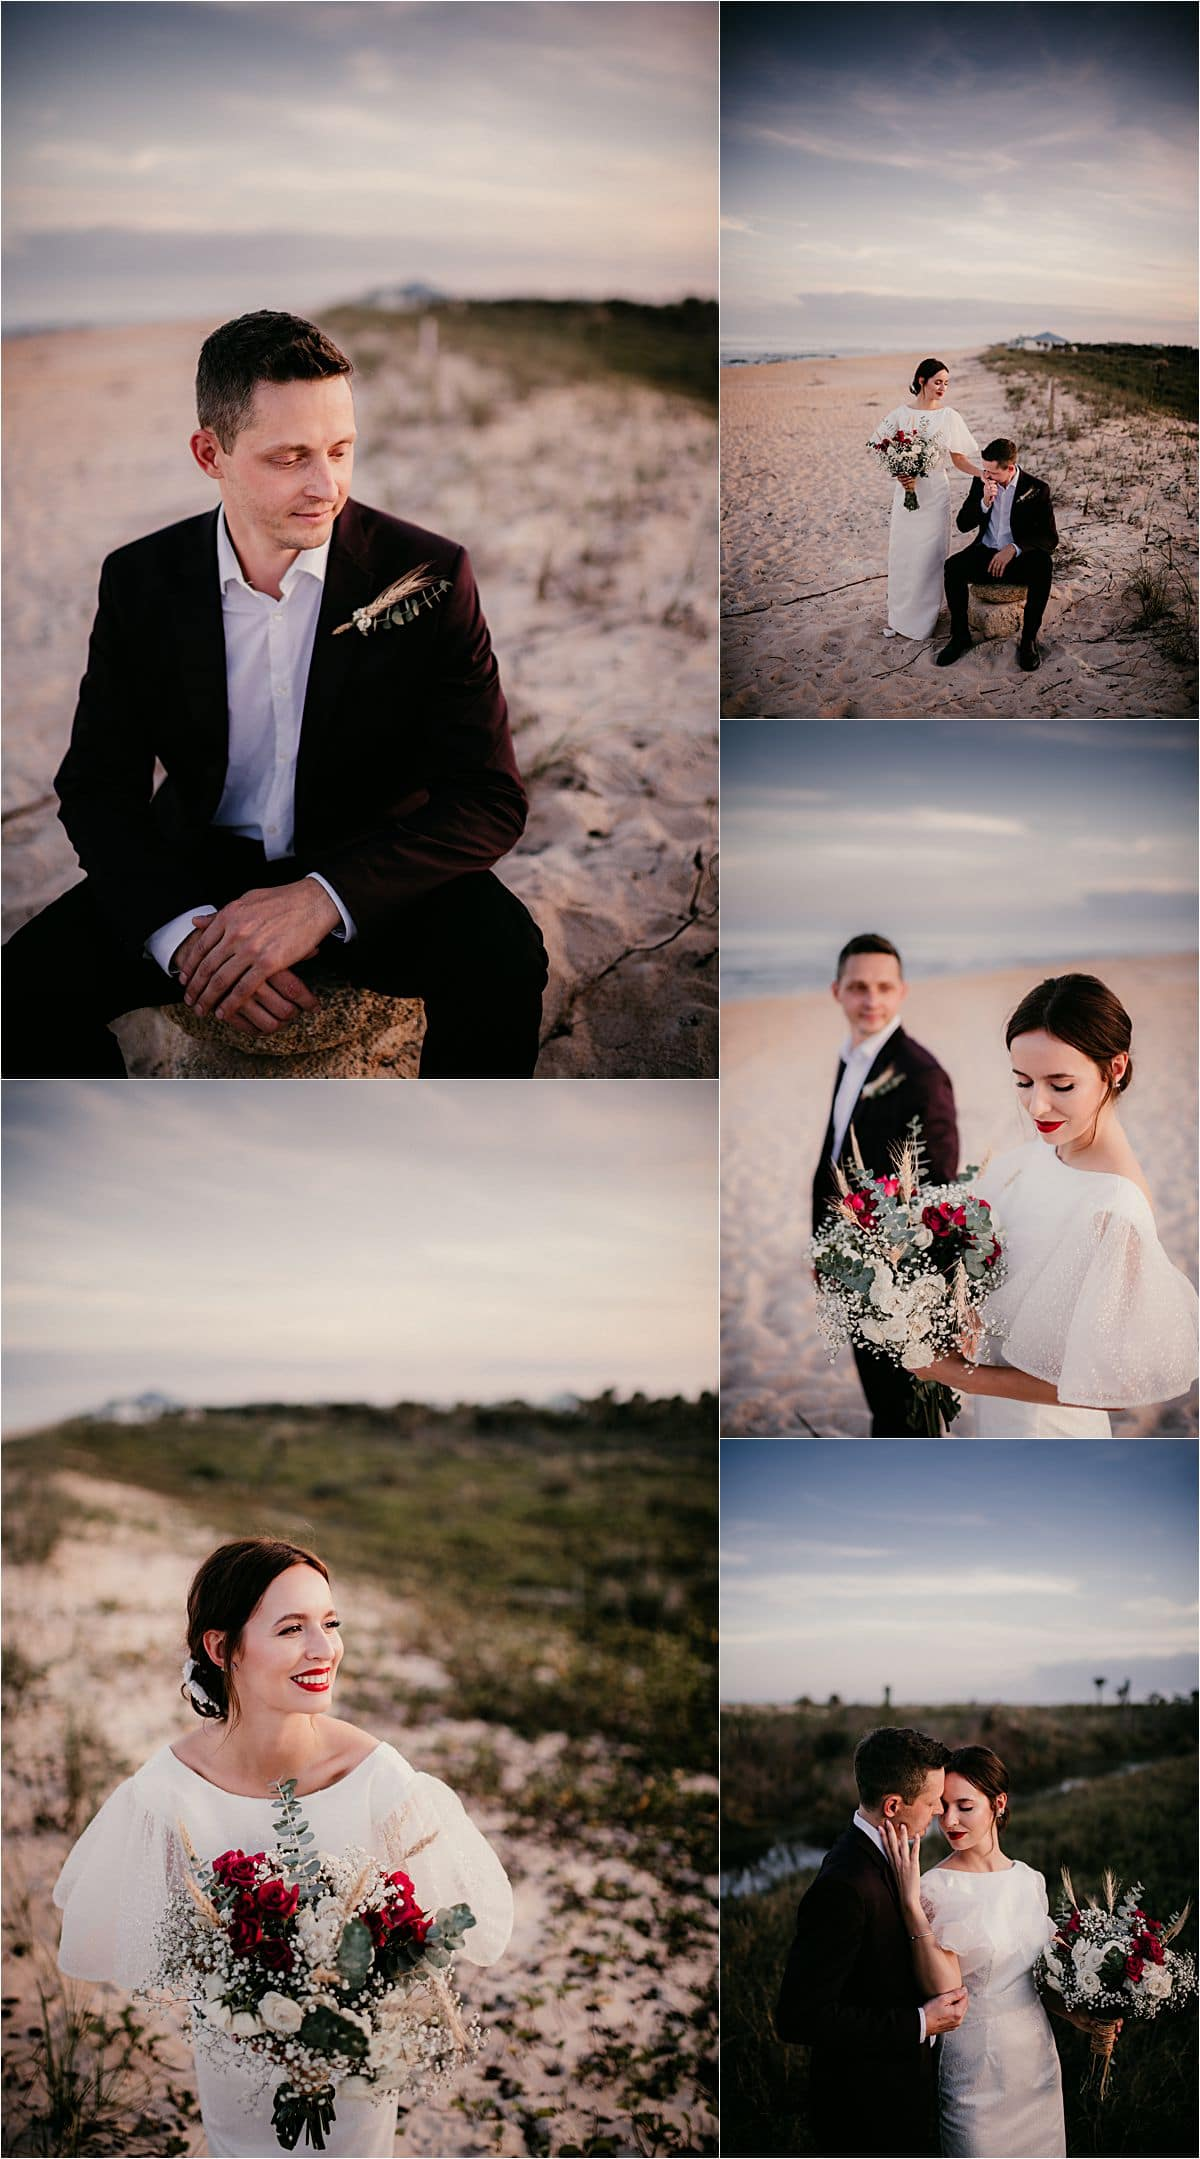 Styled Wedding Shoot Bride and Groom Near Water